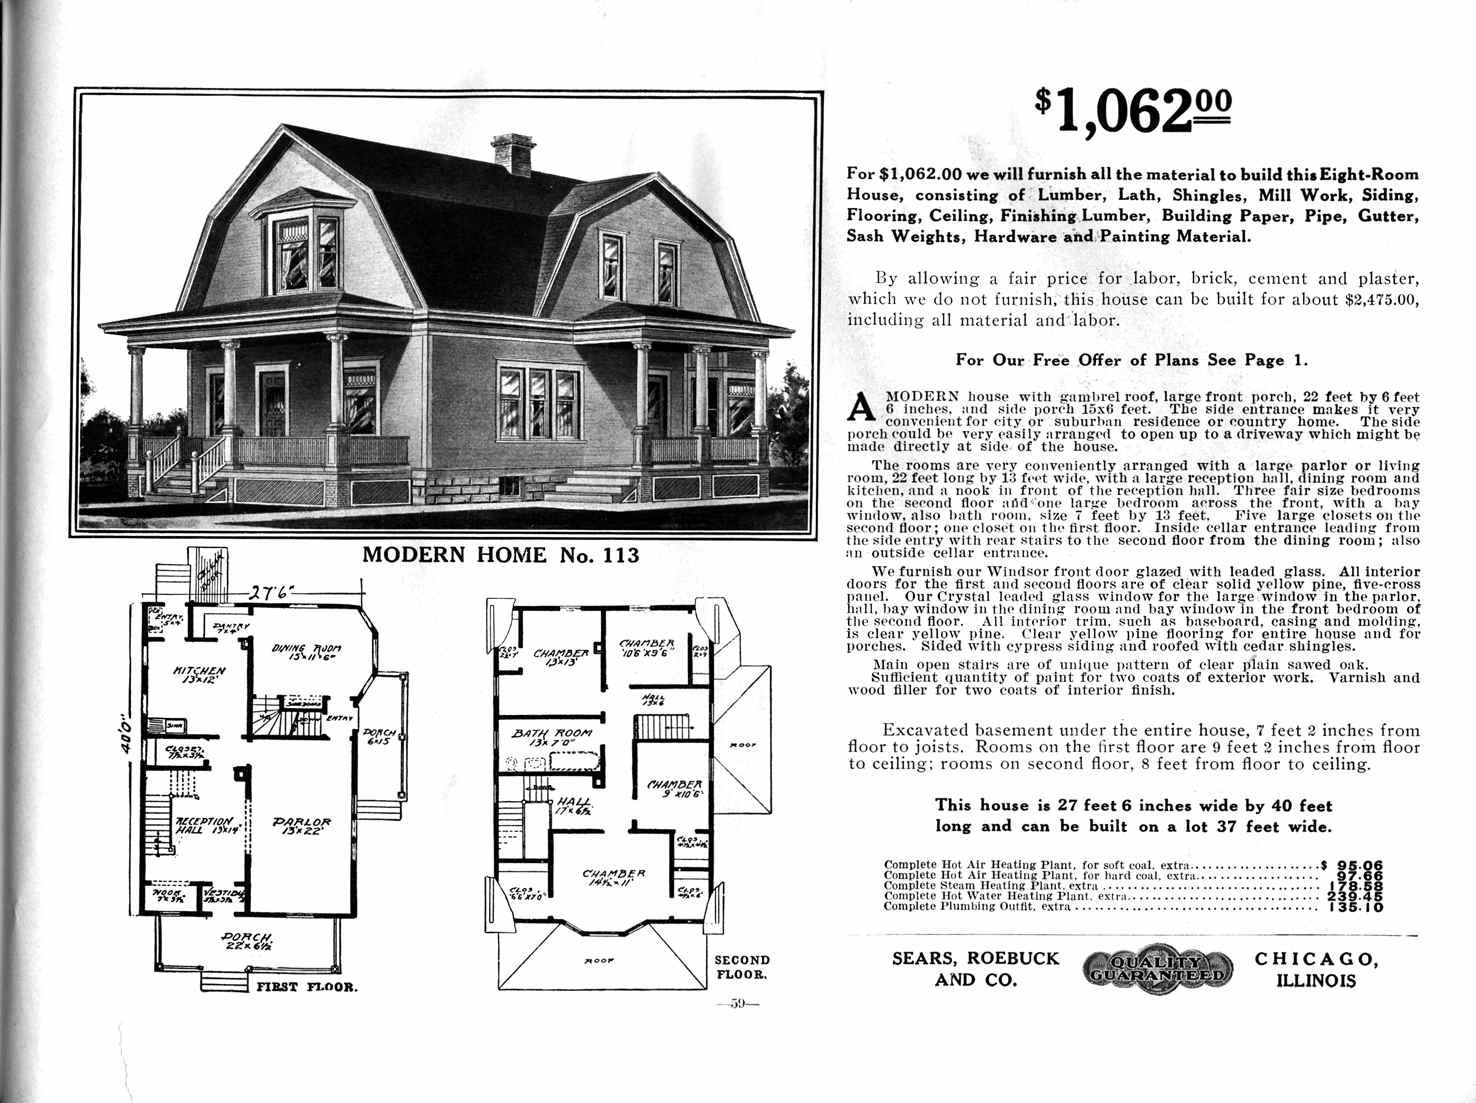 Sears Home Model No. 113; ($1,062 To $1,270)